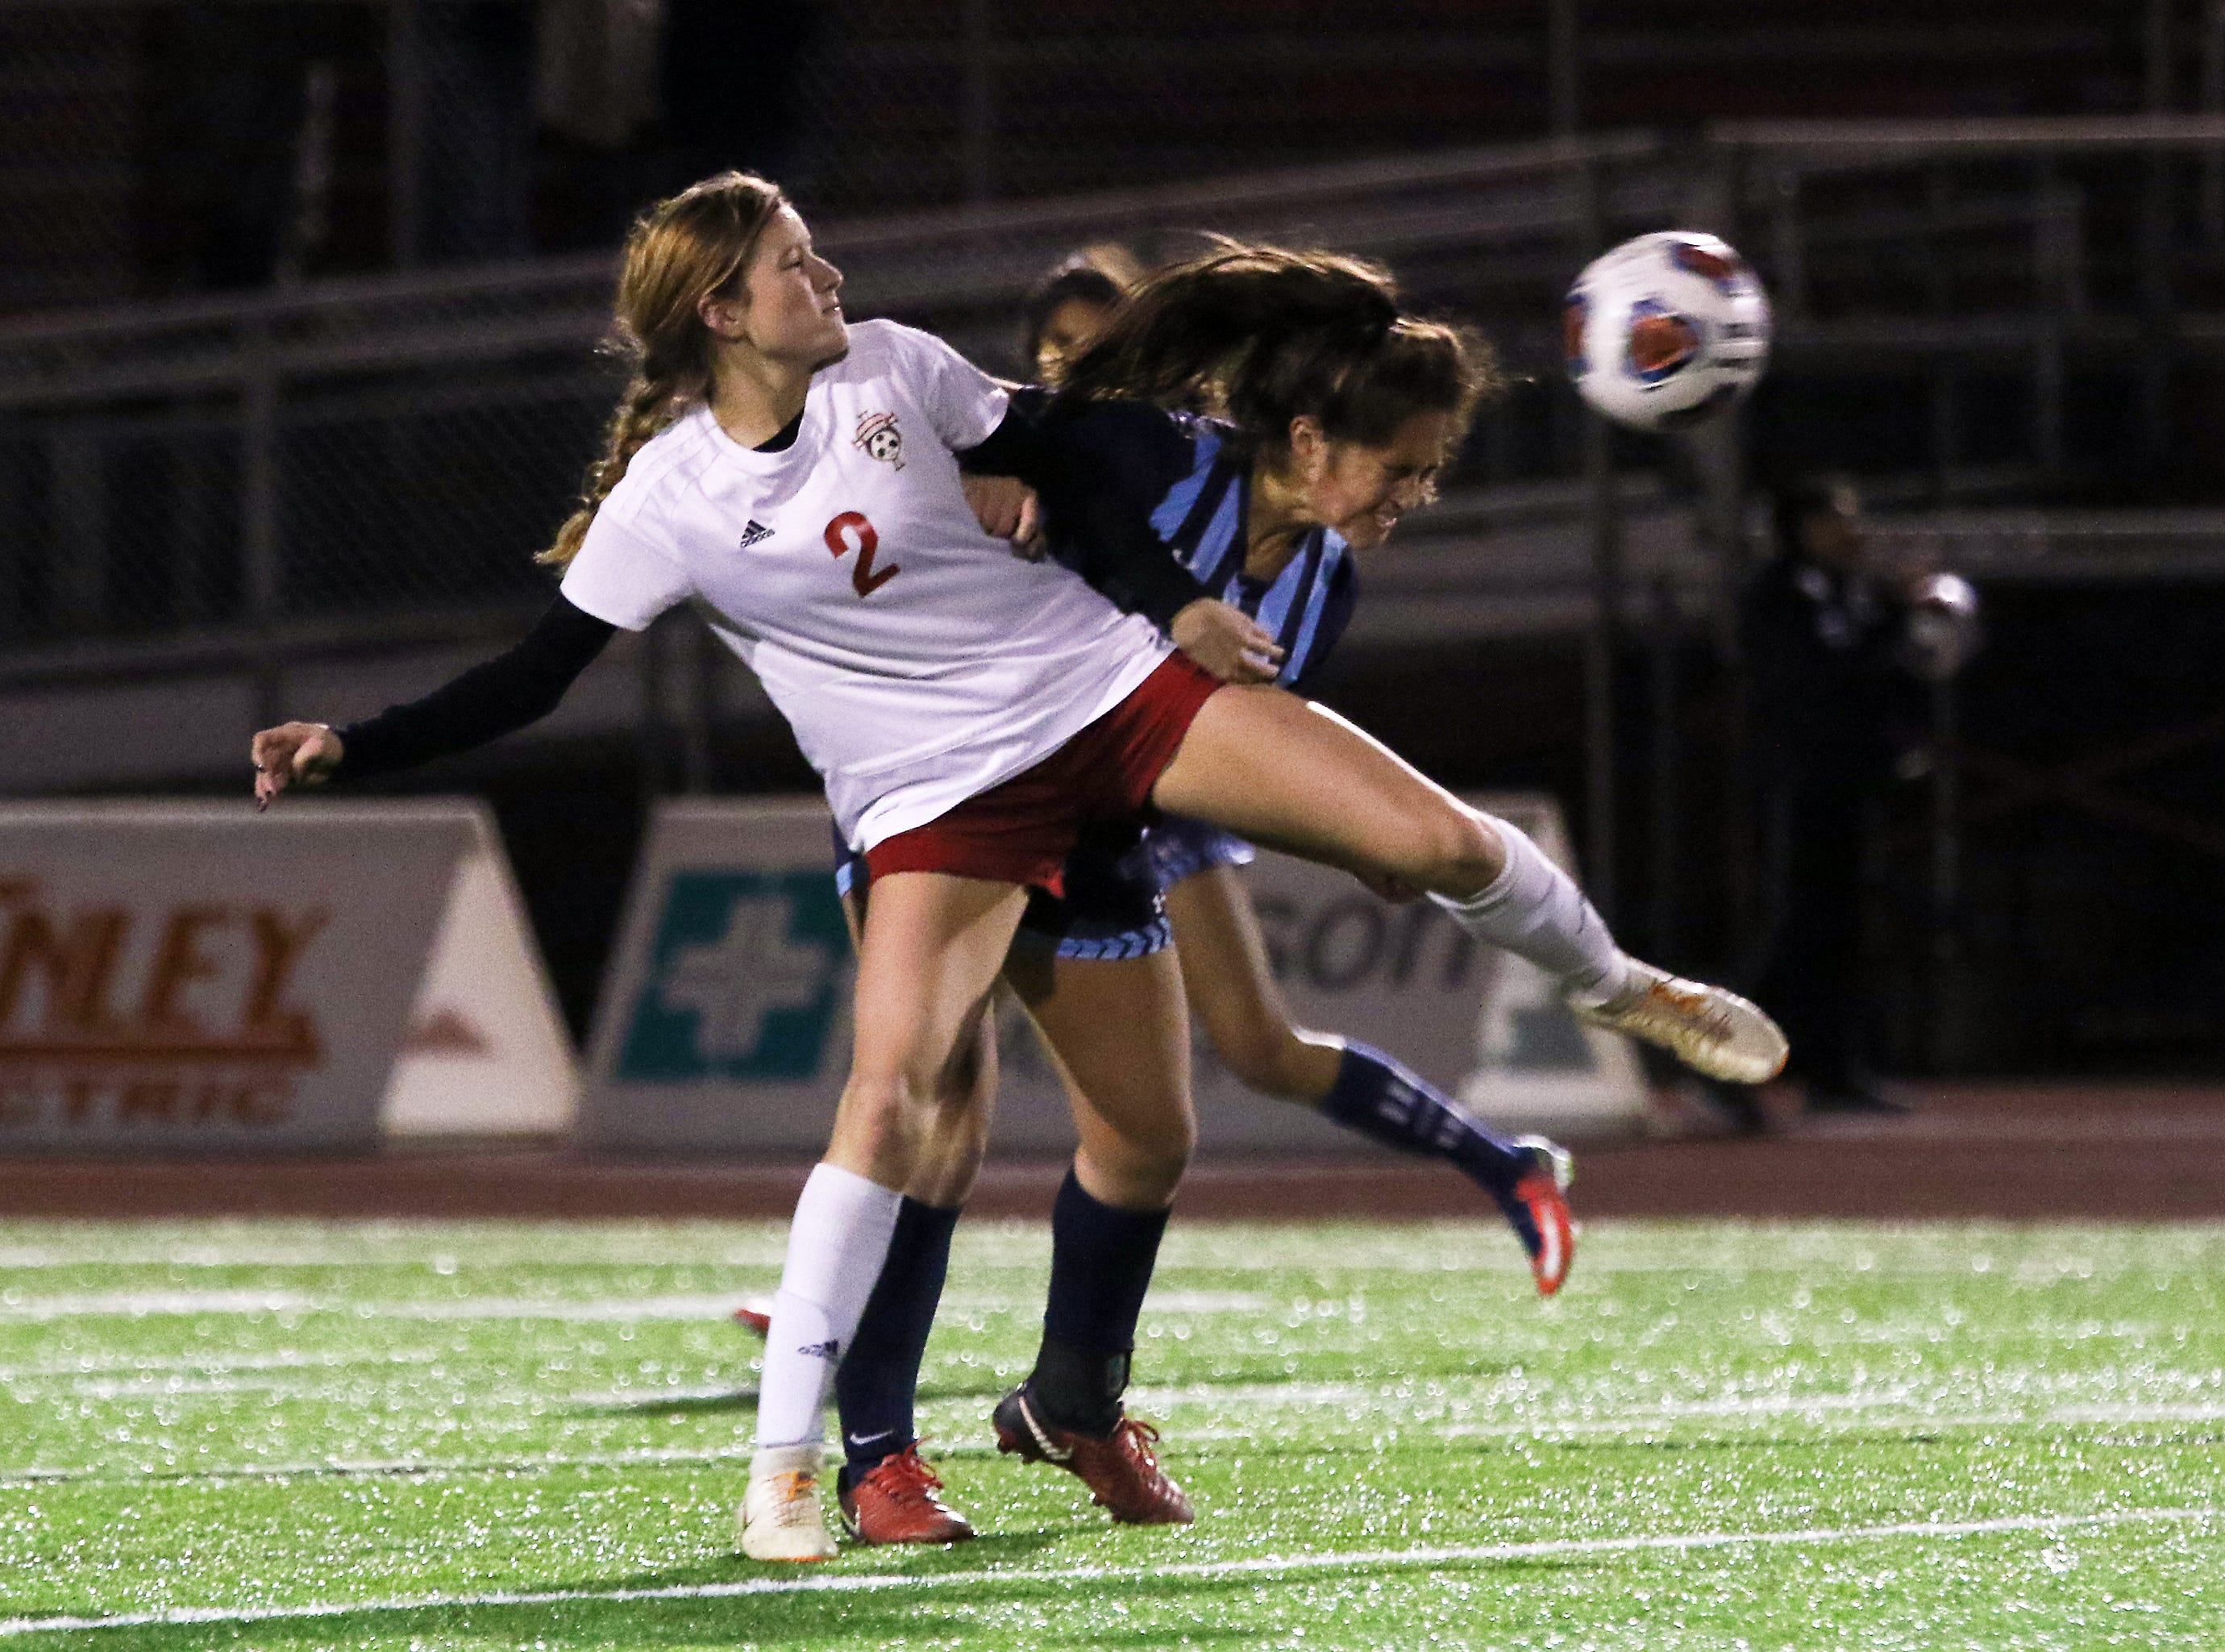 Claire Creeks fights for the ball against CCD in the Division III state semifinals at London High School on Tuesday.